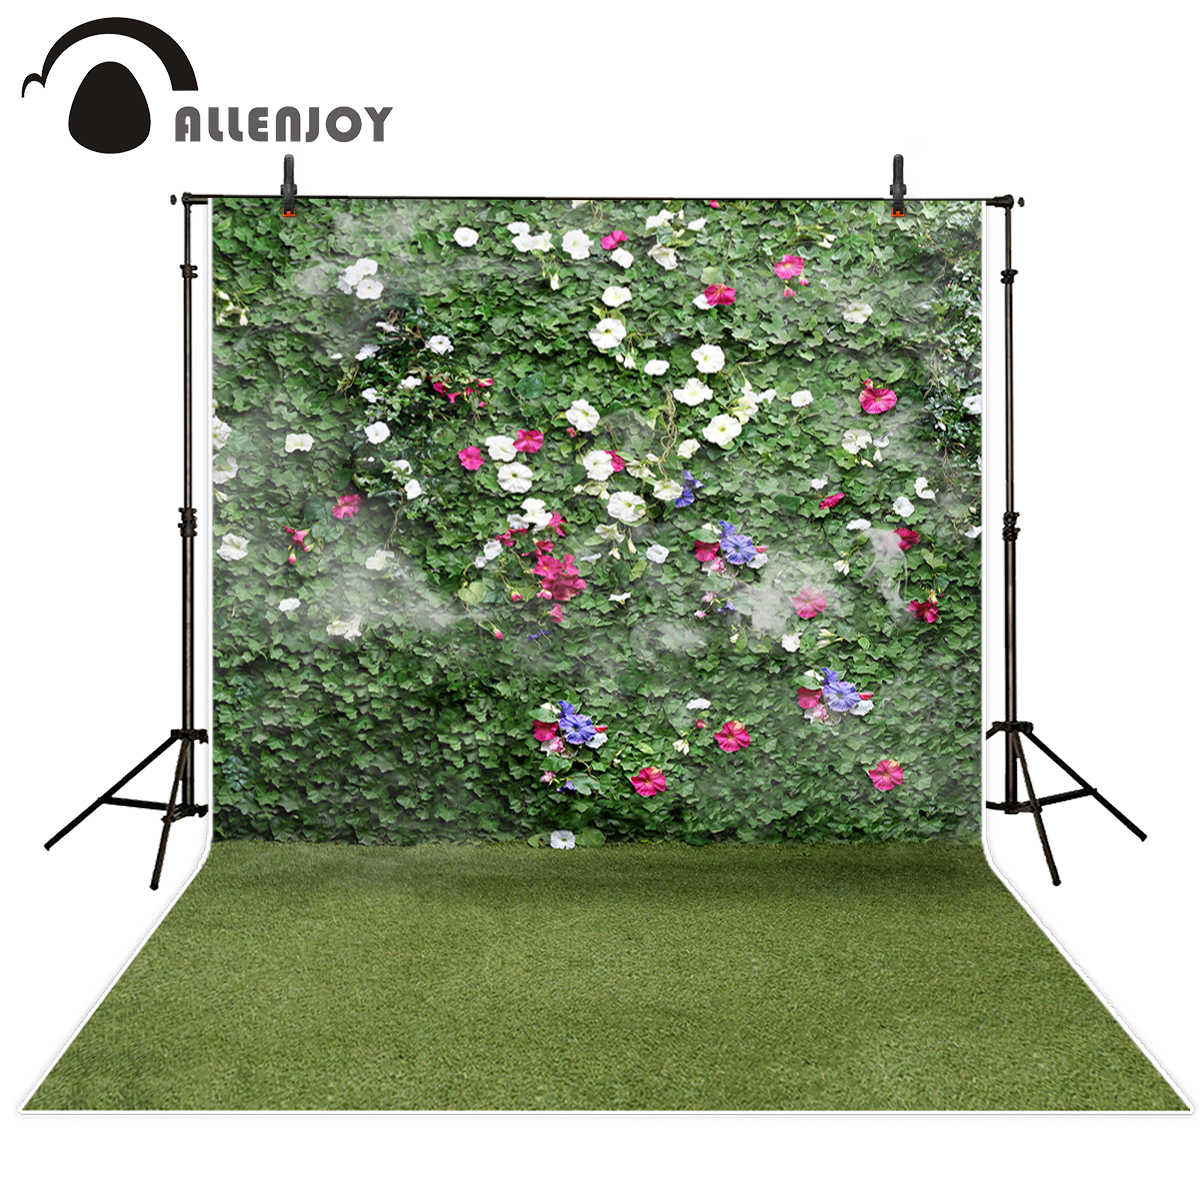 Allenjoy photographic background Grassland Flower wall Natural Green beautiful fantasy backdrop photography photocall props